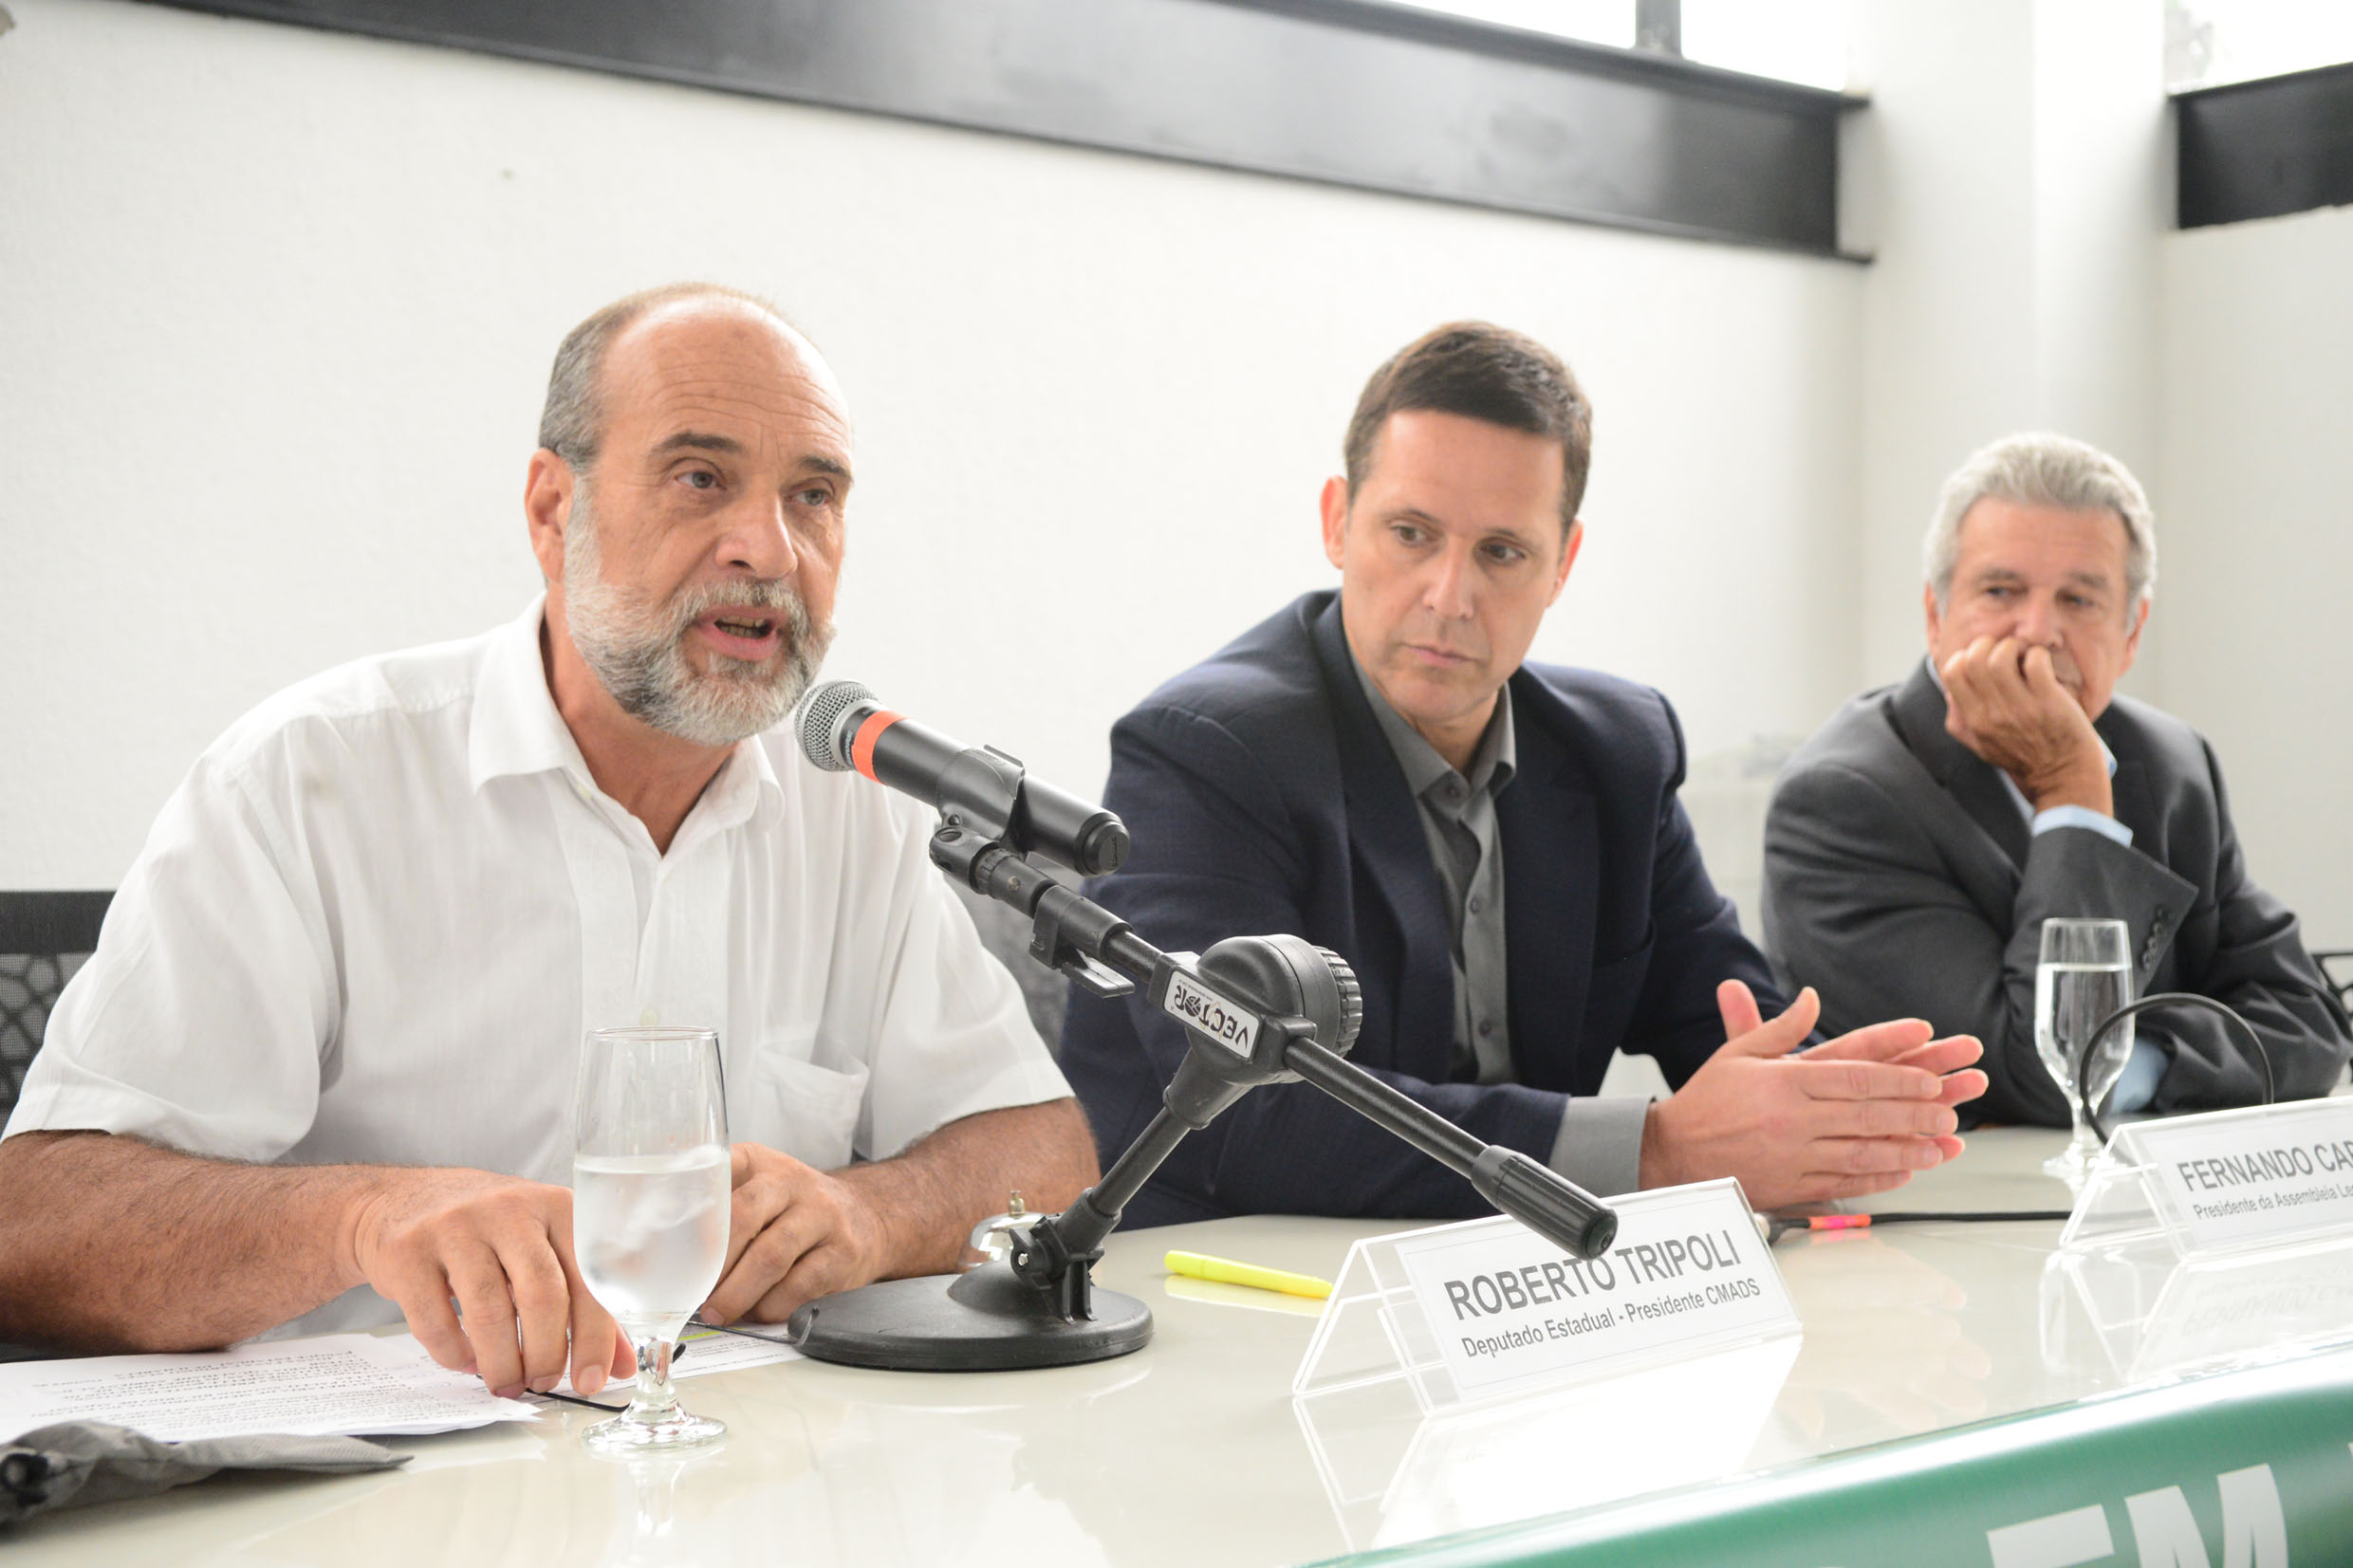 Roberto Tripoli, Fernando Capez e Jerson Kelman <a style='float:right' href='https://www3.al.sp.gov.br/repositorio/noticia/N-03-2017/fg200075.jpg' target=_blank><img src='/_img/material-file-download-white.png' width='14px' alt='Clique para baixar a imagem'></a>